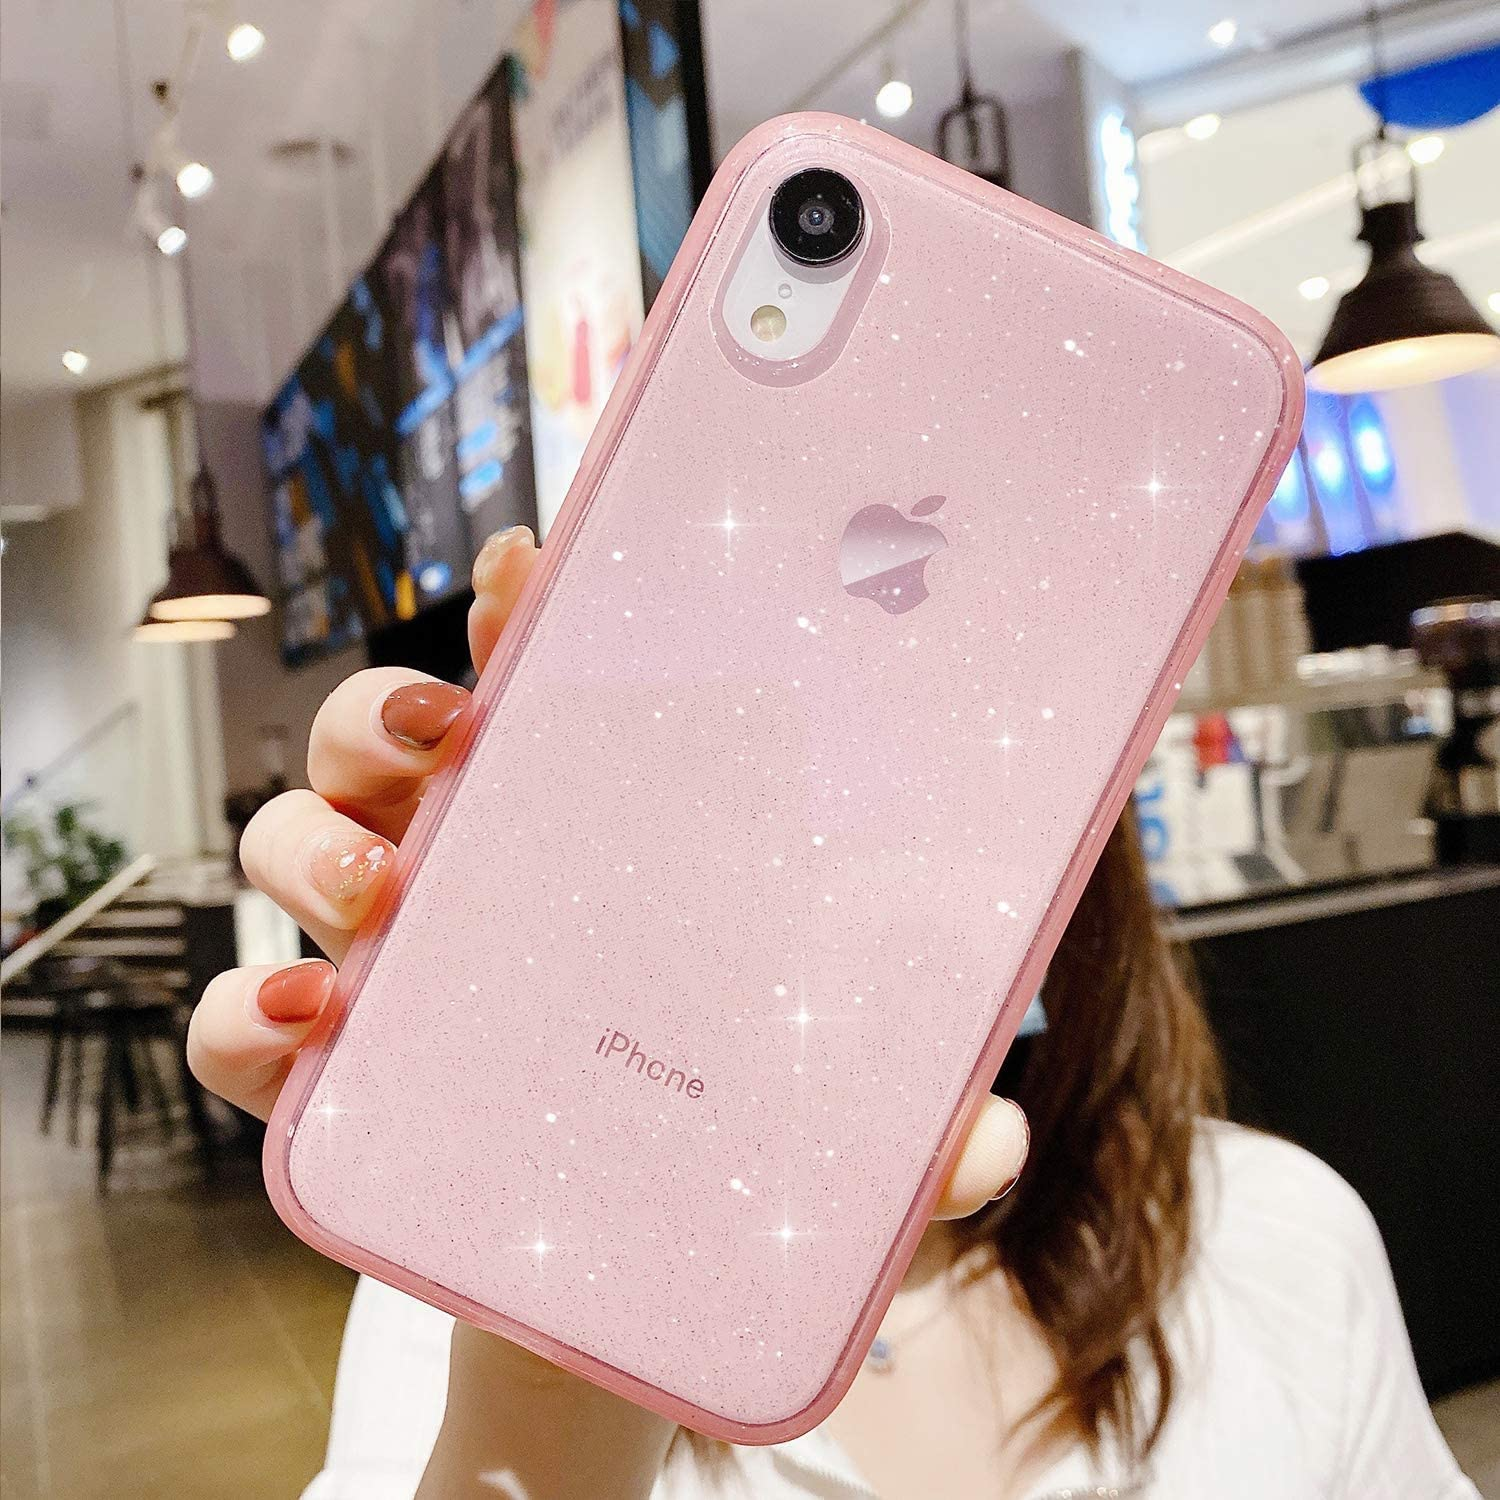 Compatible with iPhone XR Case for Girl Women,[ Anti-Shock Matte Edge Bumper Design] Soft Slim Fit Full-Around Protective Cute Clear Sparkly Bling Phone Case Glitter Cover for iPhone XR 6.1''-Pink